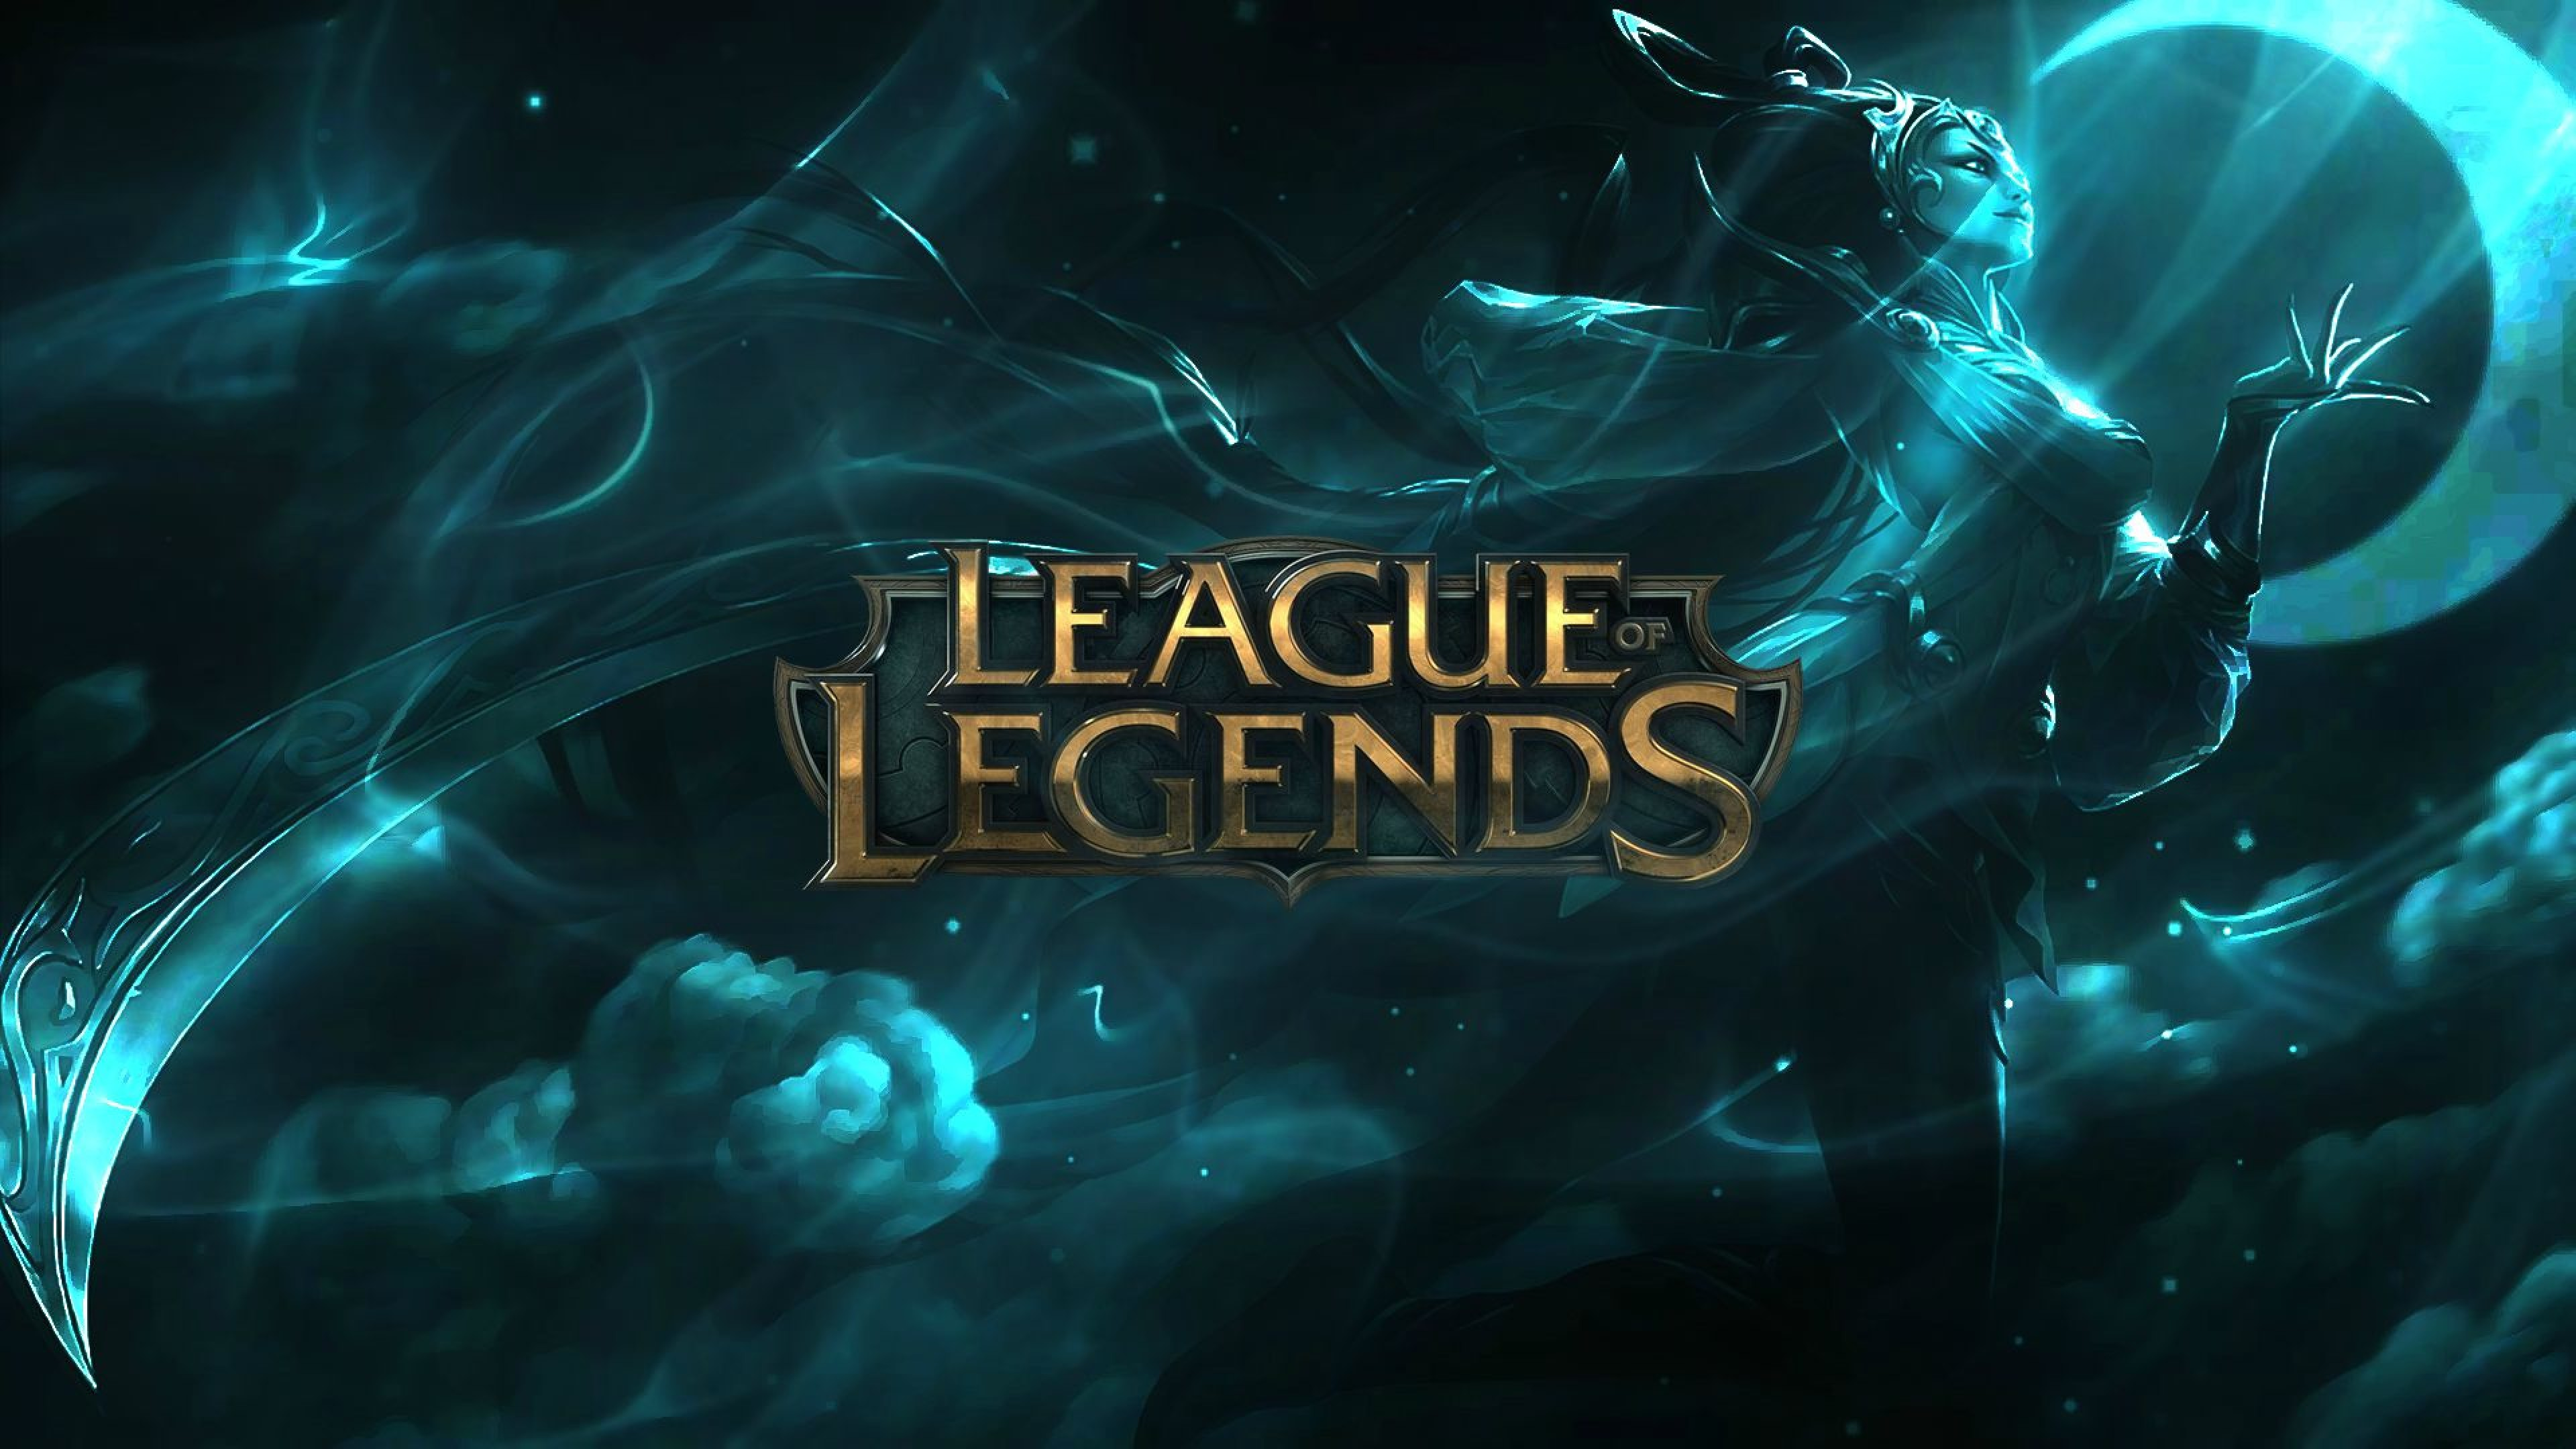 Hd League Of Legends 52 Images Dodowallpaper